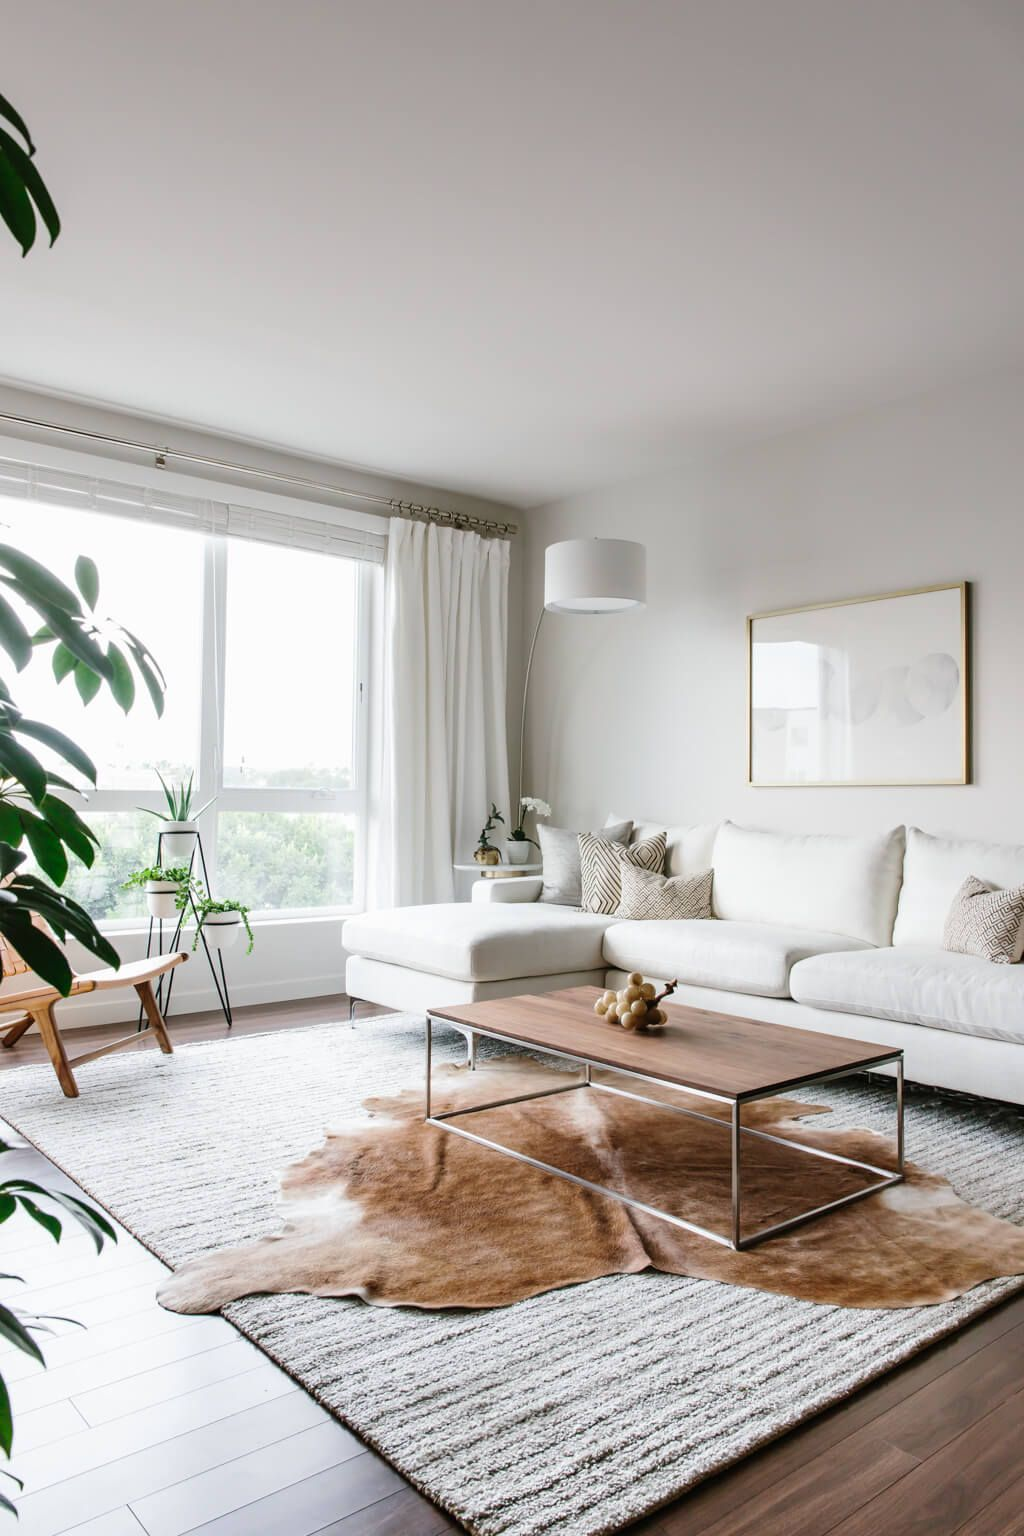 How To Design My Living Room Decoration In Nigeria Designing Modern And Minimalist With Havenly Take A Tour Of Interior Style Is Blend Minimalism Mid Century Scandinavian Socal Vibes